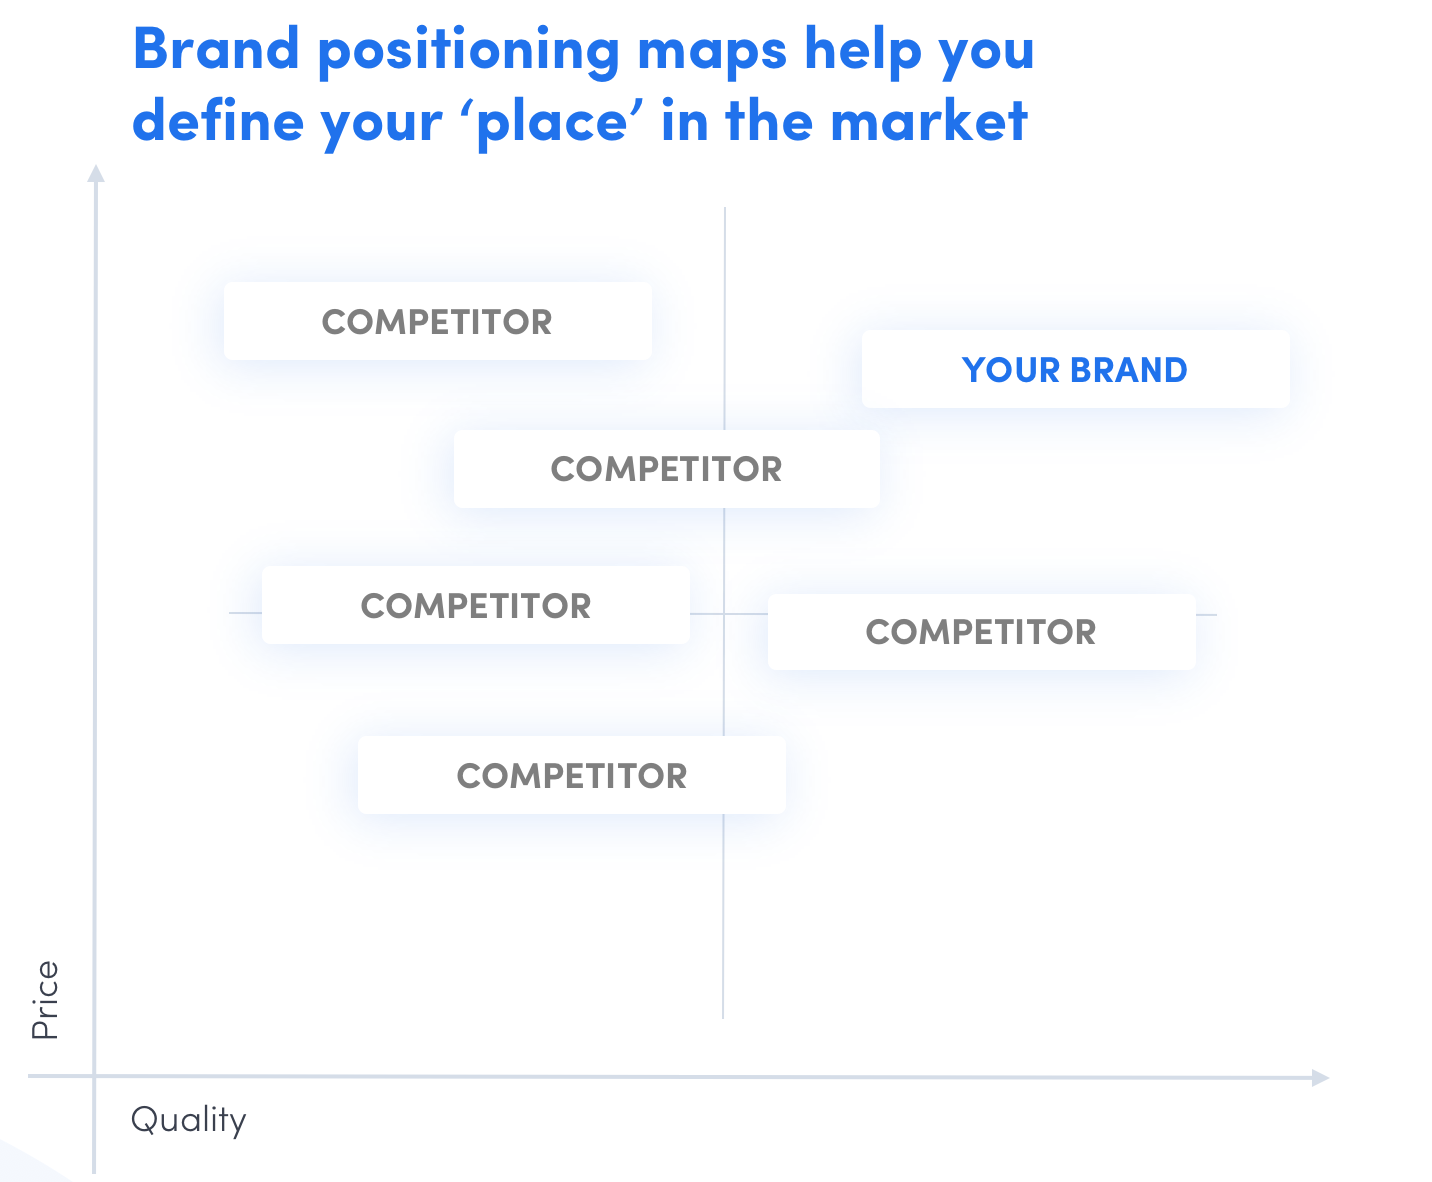 brand positioning map price v quality